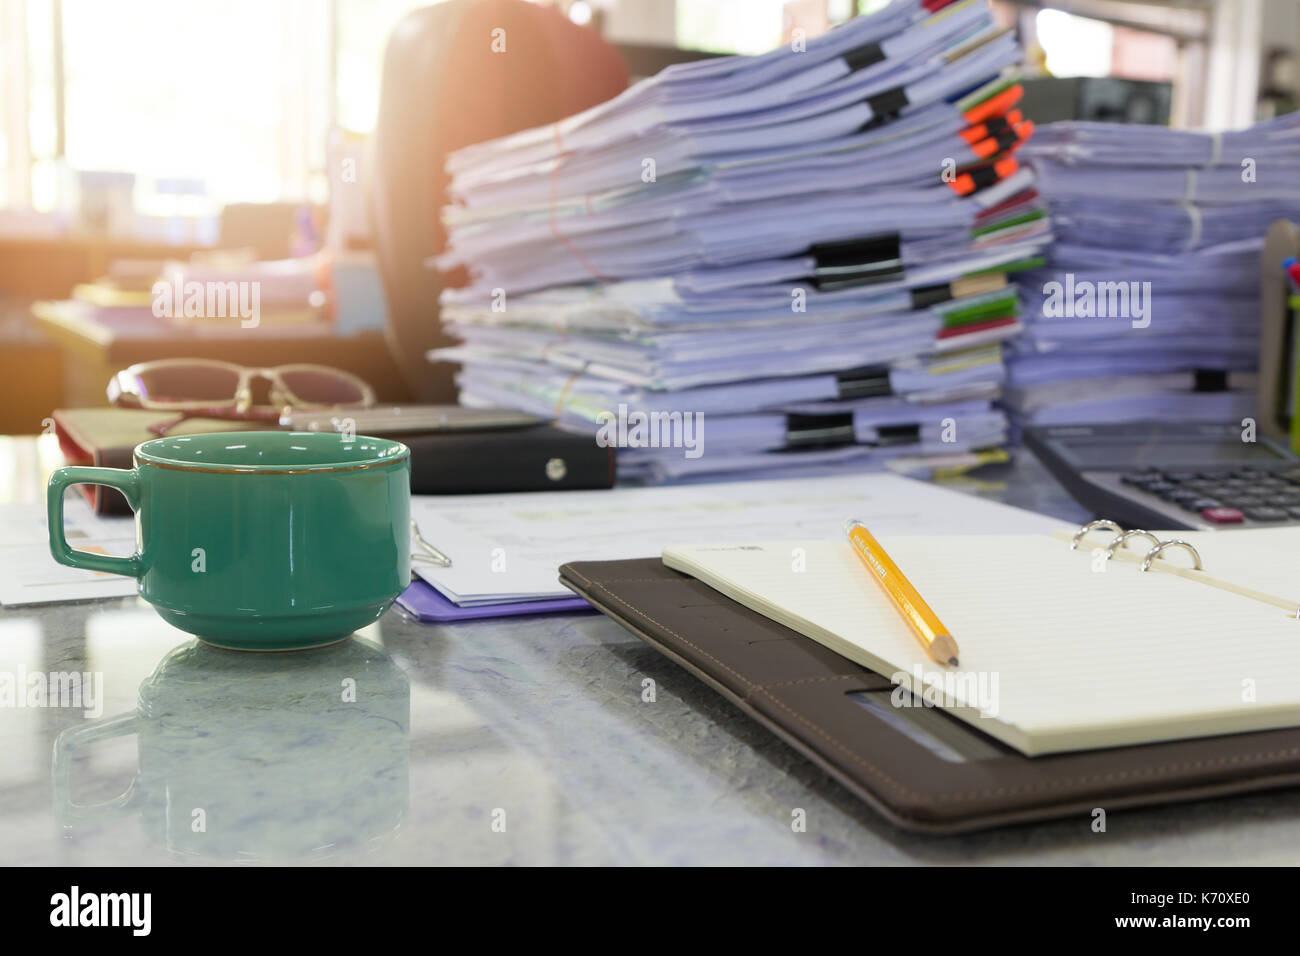 Concept of document workload, Pile of unfinished documents on office desk, Stack of business paper - Stock Image